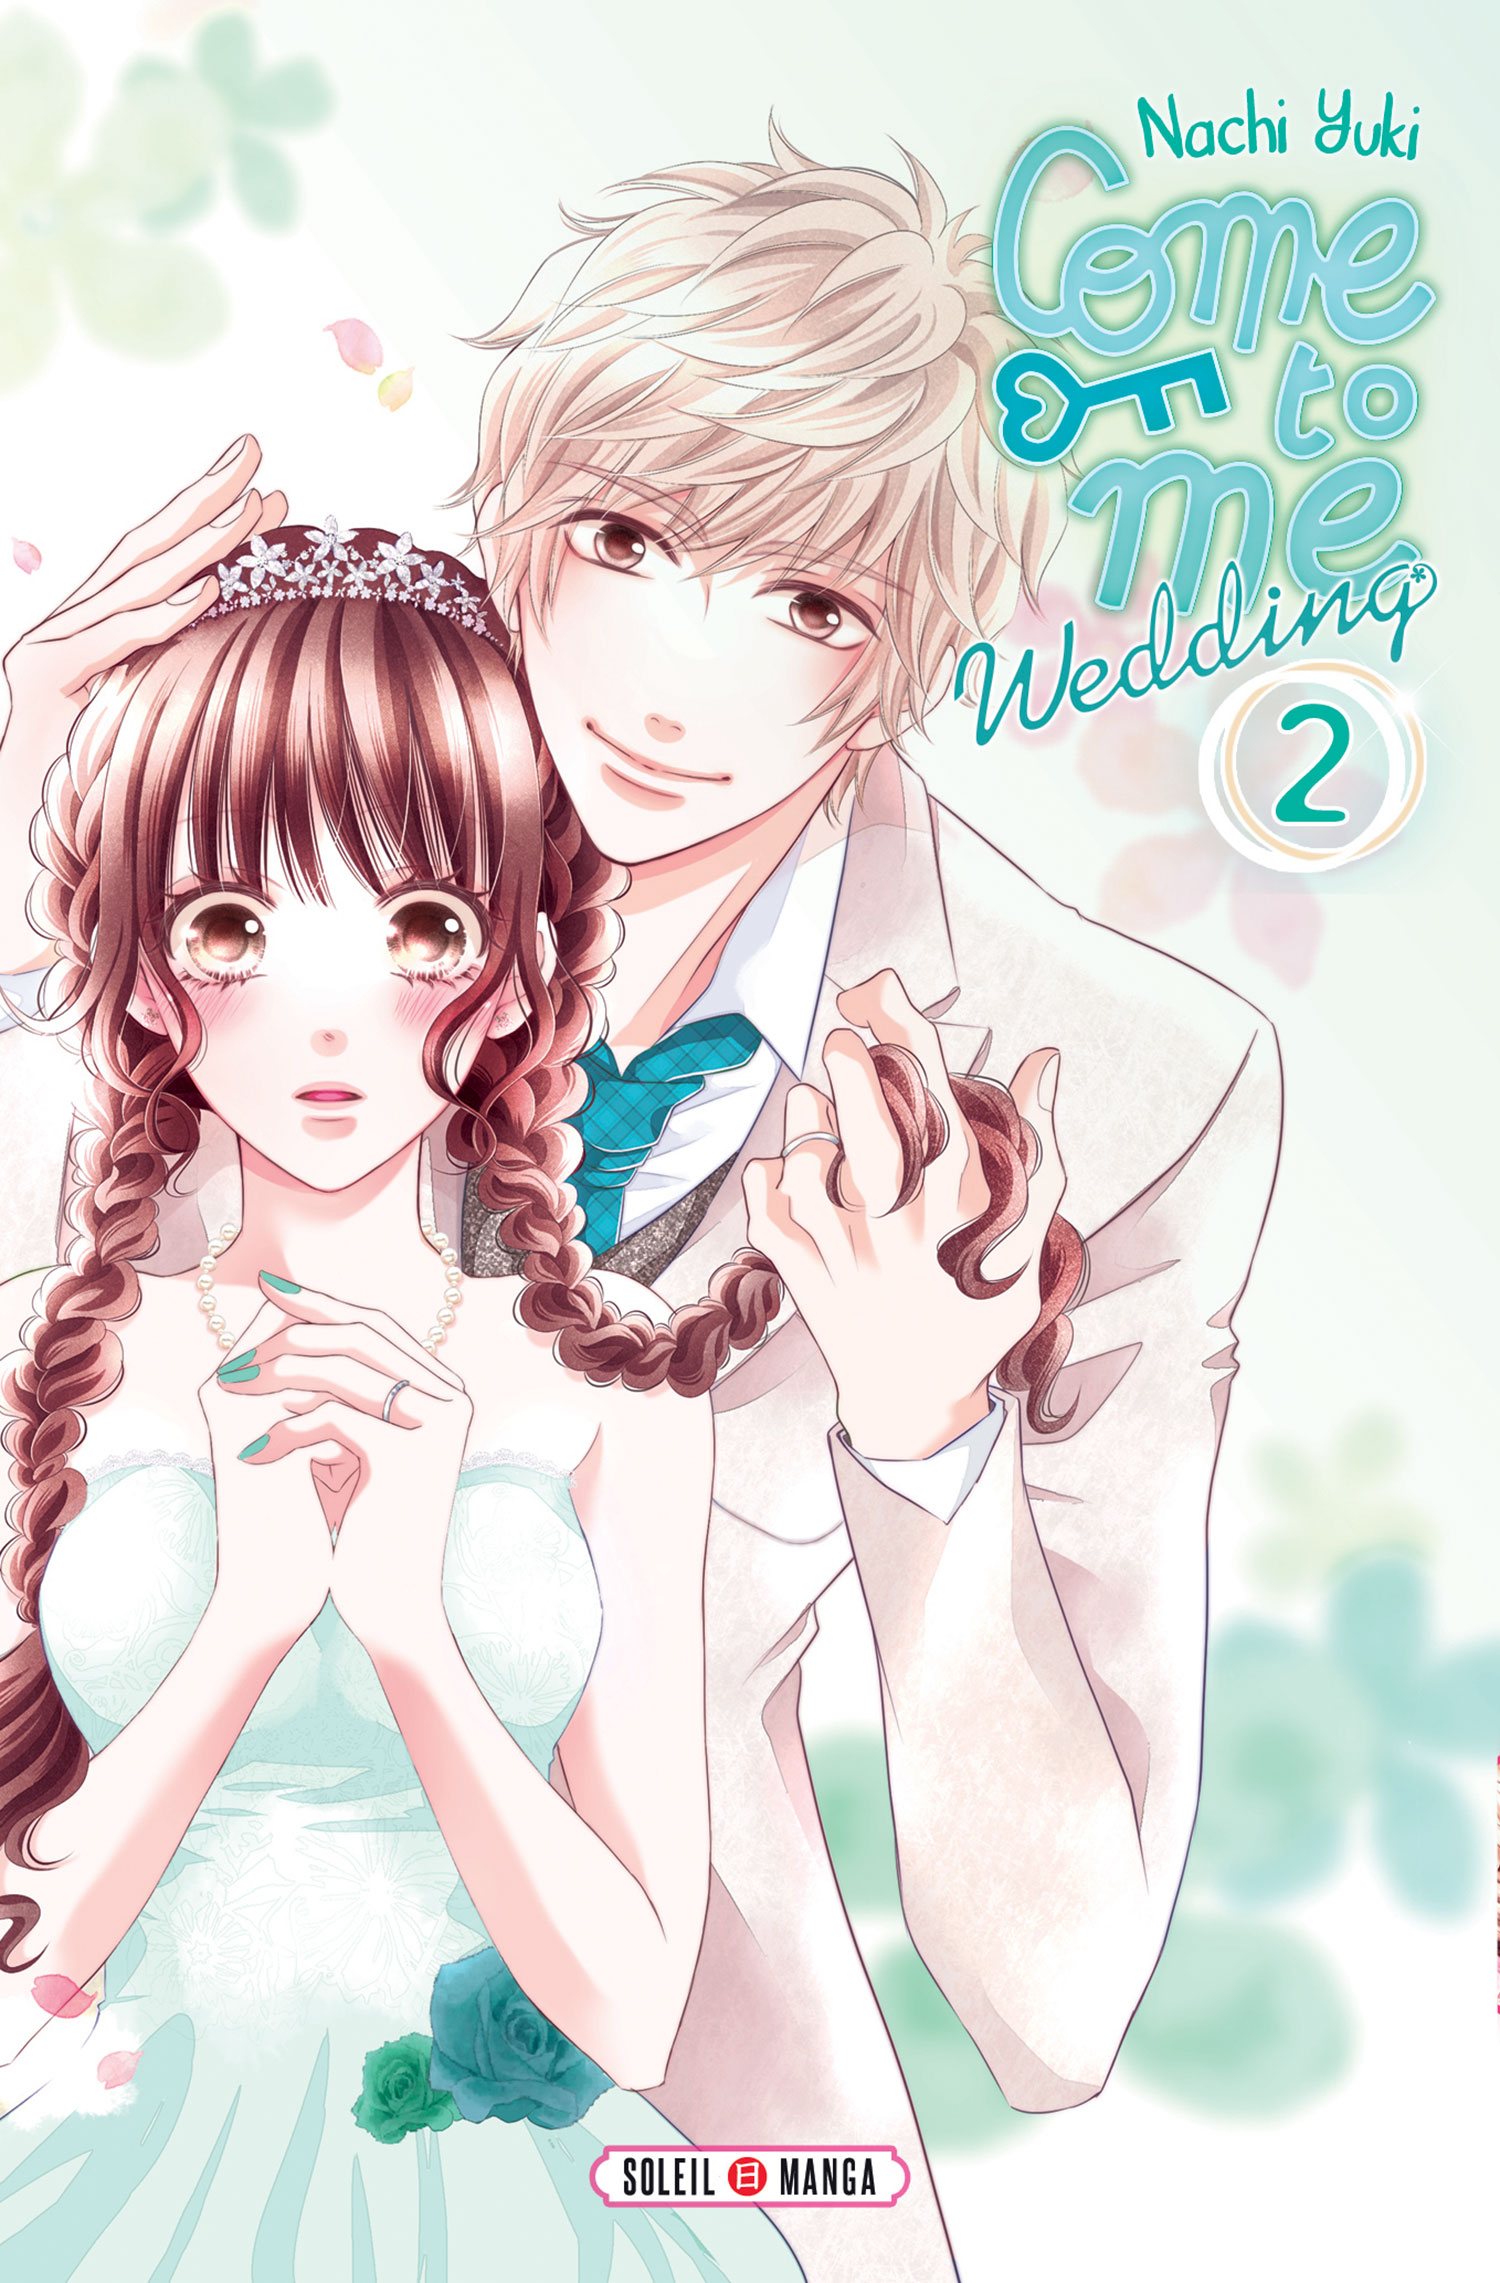 Come to me wedding 2